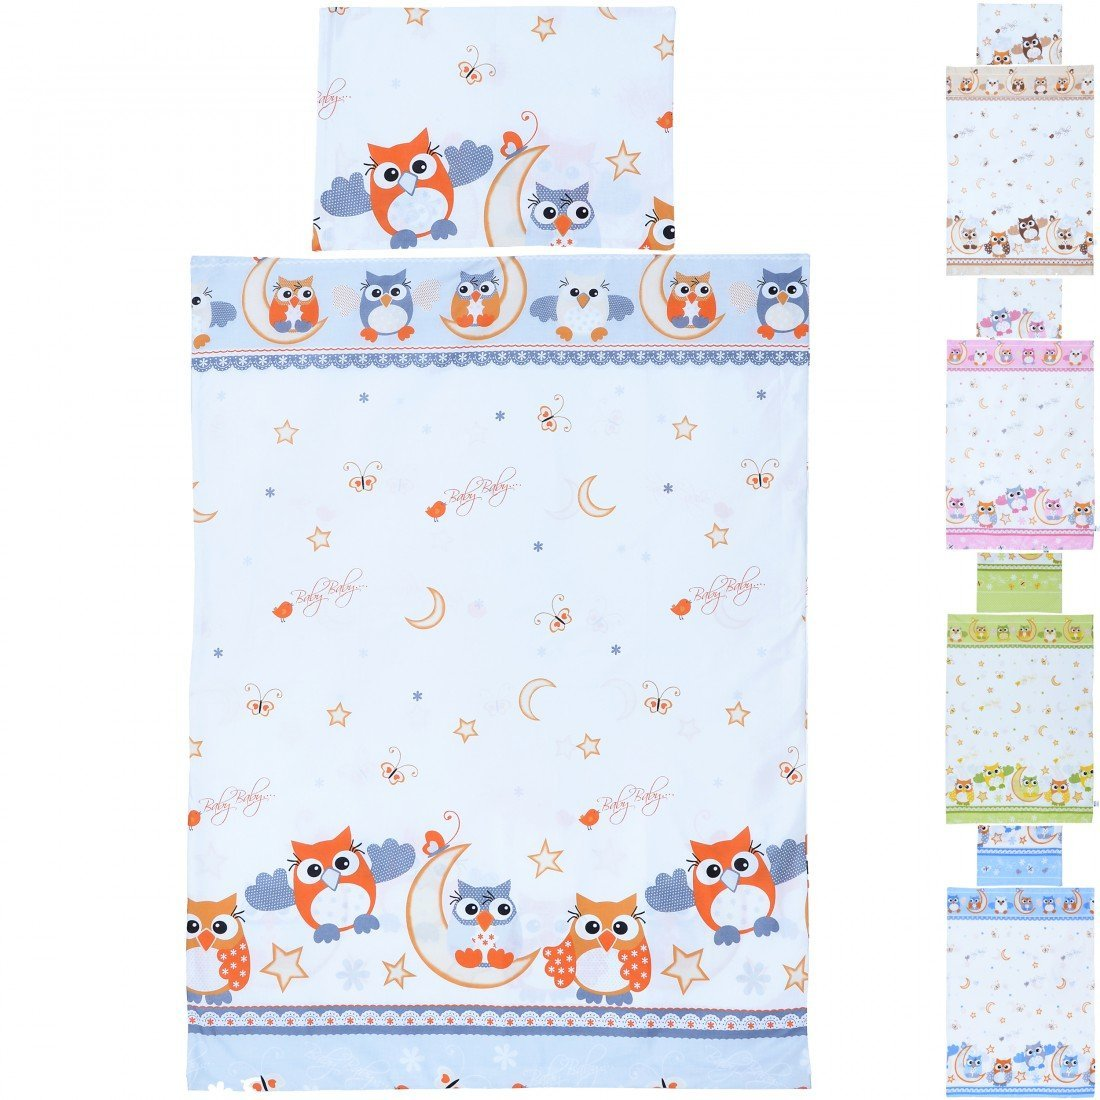 LCP Kids Owls red 2 Pcs Baby Cot Bedding Set - Duvet Cover 135x100cm Pillowcase 60x40cm for Children Room